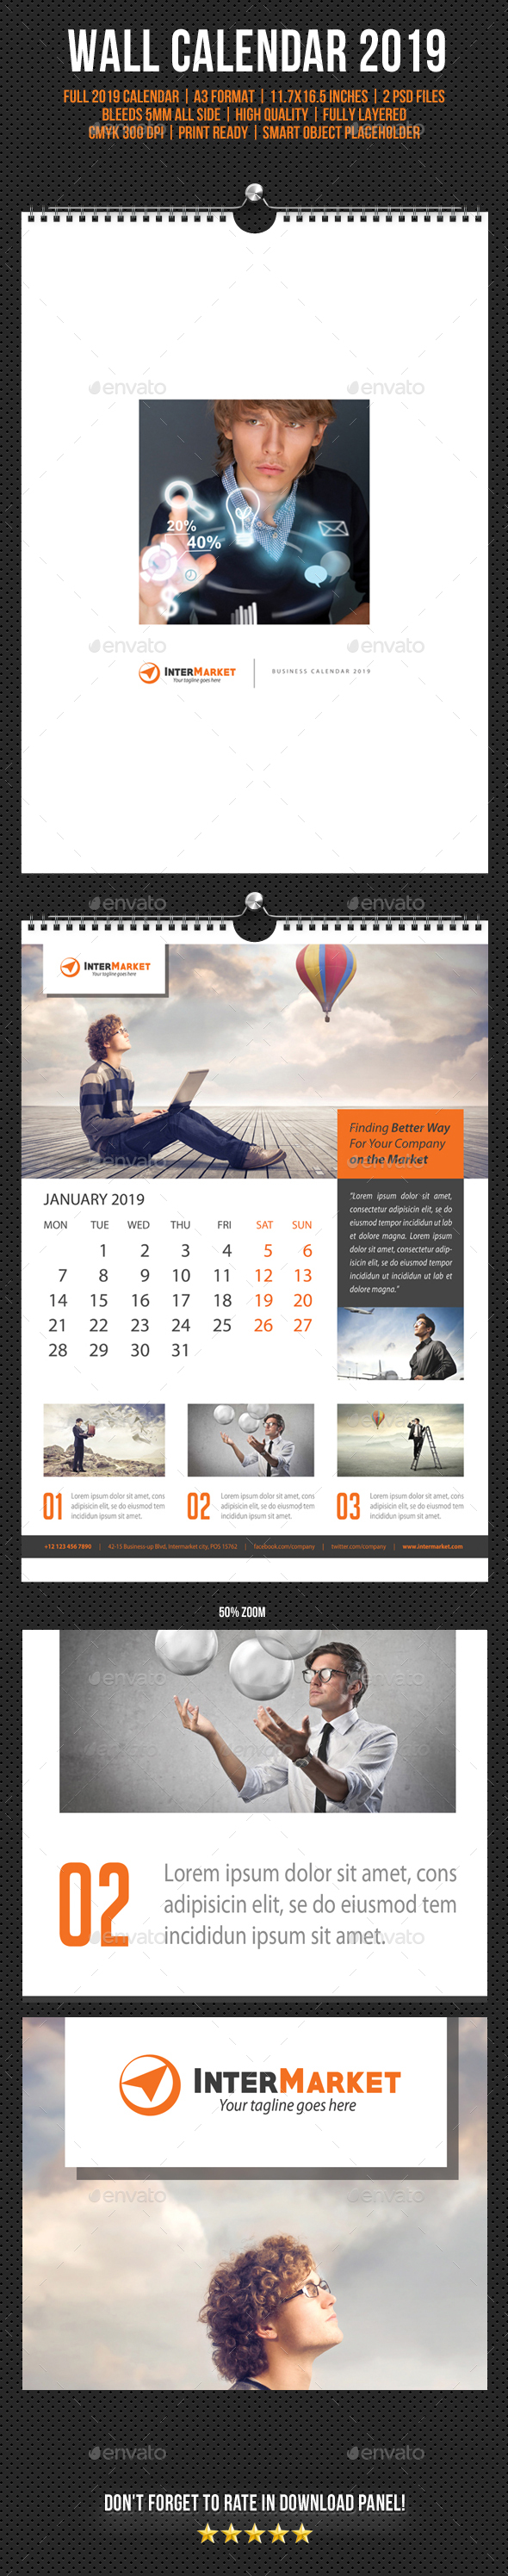 Corporate Wall Calendar 2019 V05 - Calendars Stationery